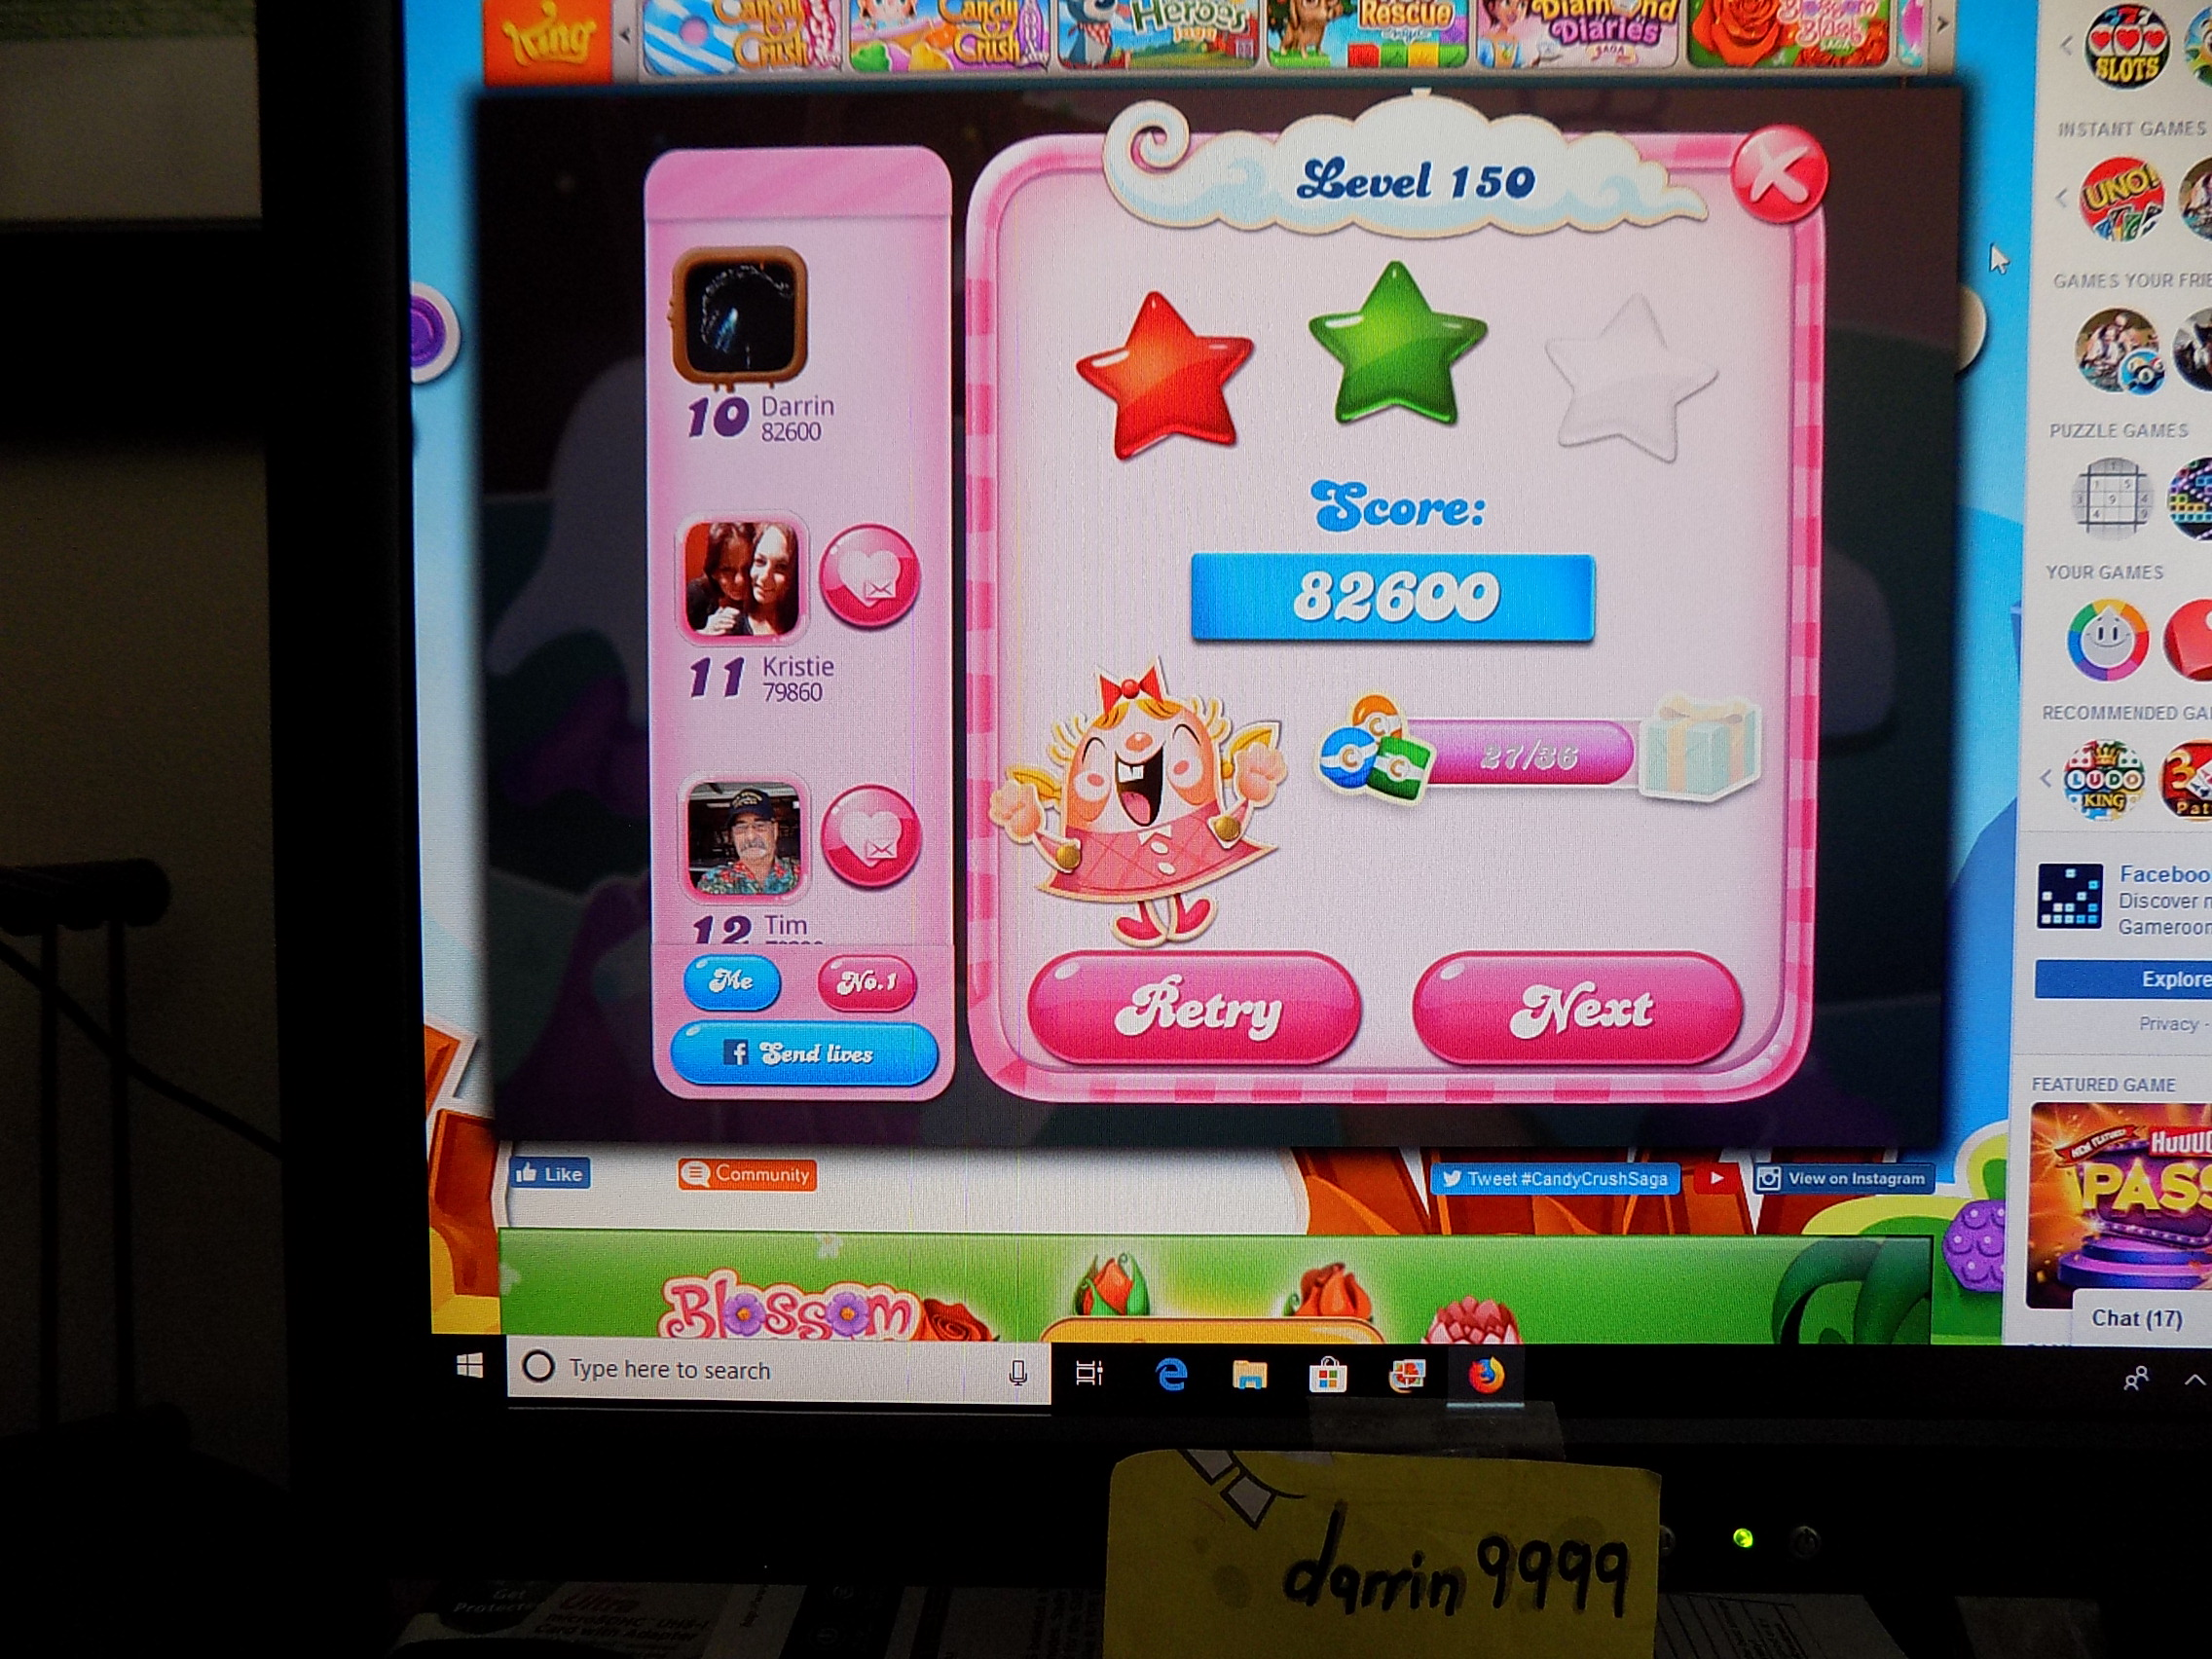 darrin9999: Candy Crush Saga: Level 150 (Web) 82,600 points on 2019-08-19 15:15:04